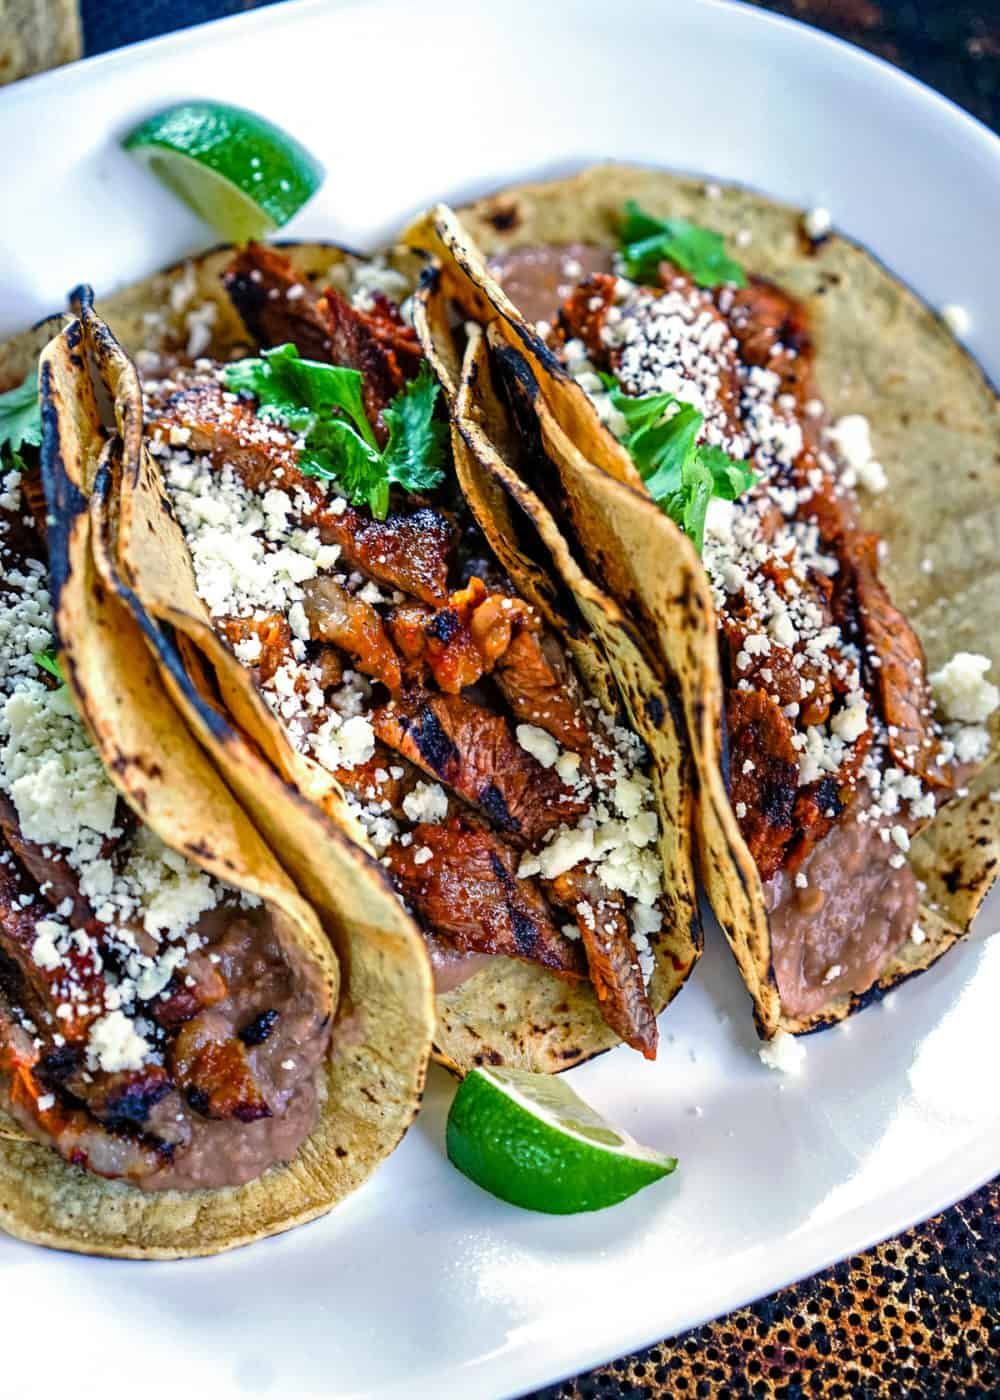 overhead: platter of flank steak tacos garnished with cojita cheese and cilantro